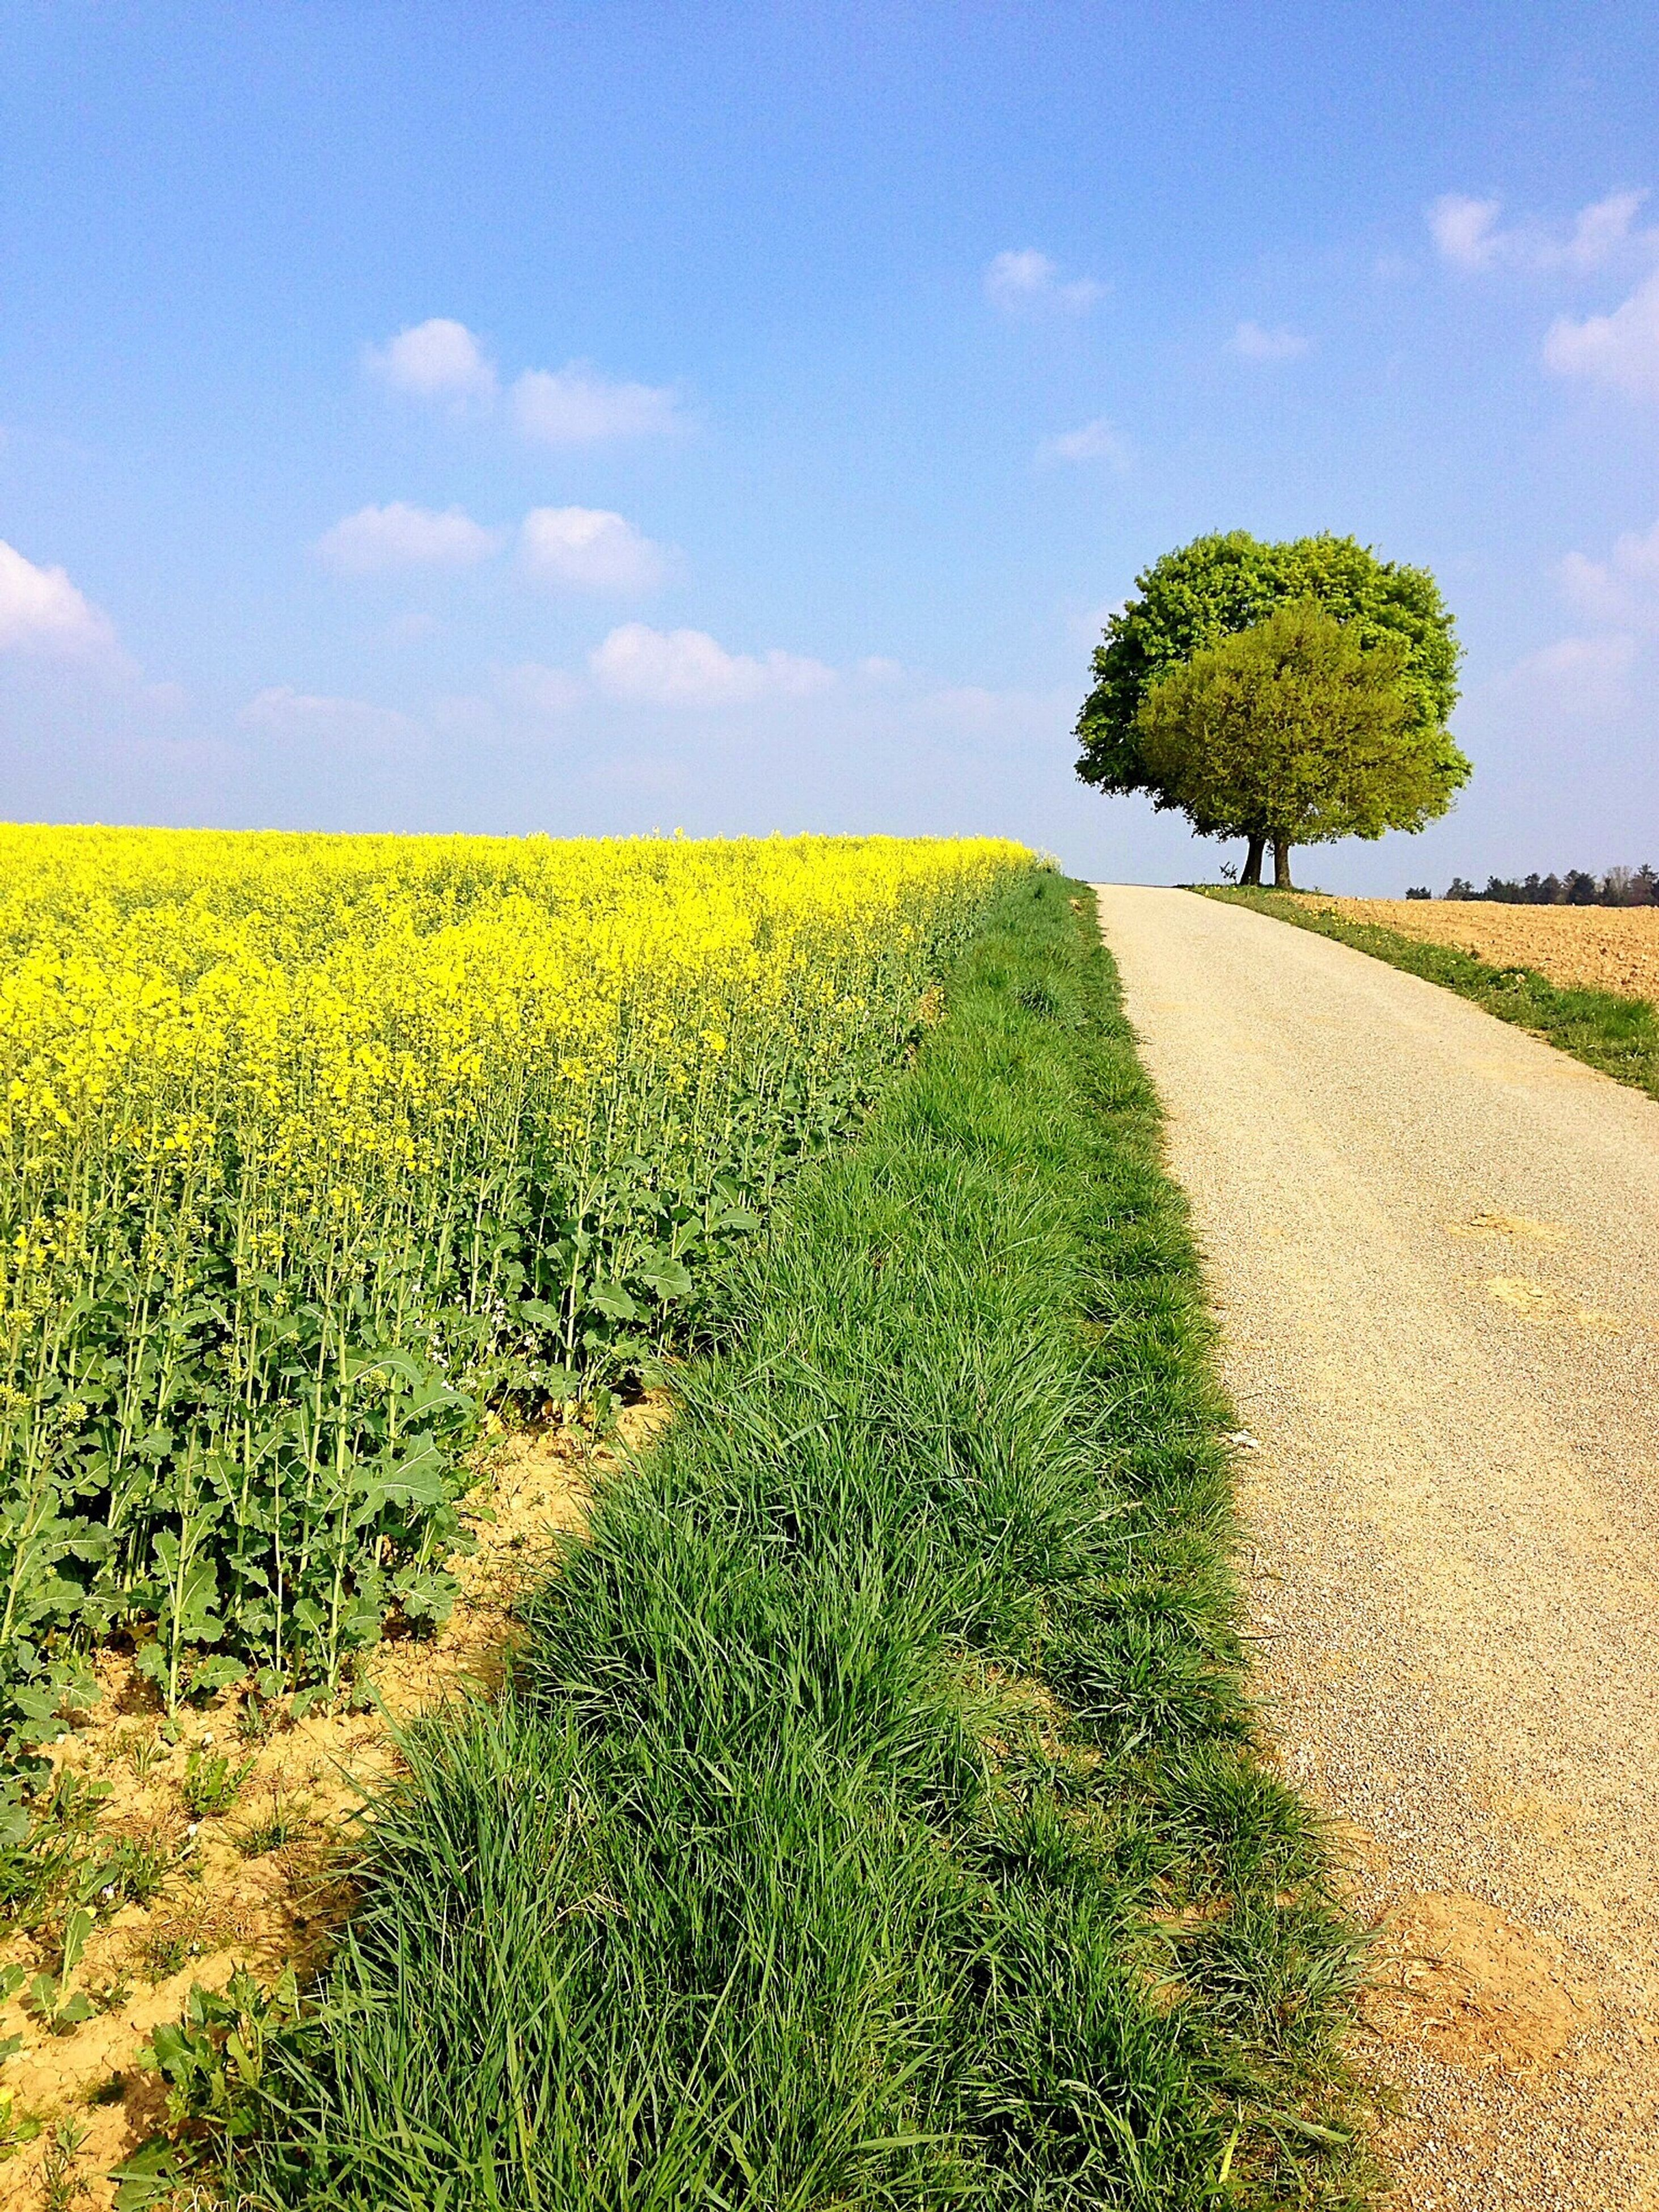 sky, tree, tranquility, tranquil scene, field, landscape, scenics, green color, nature, cloud - sky, grass, beauty in nature, growth, yellow, cloud, agriculture, rural scene, the way forward, sunlight, idyllic